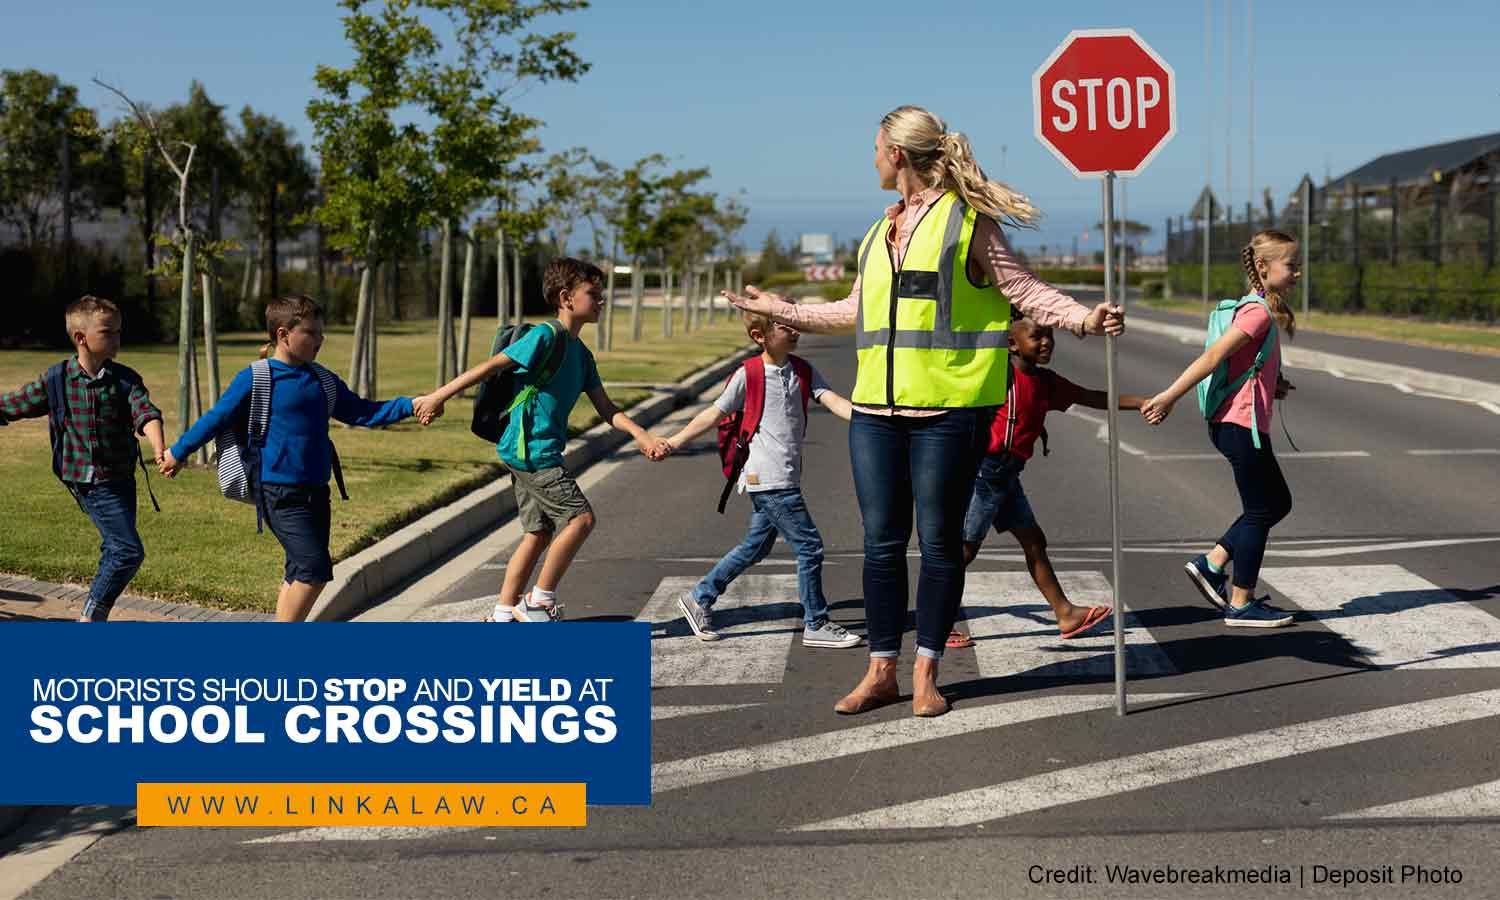 Motorists should stop and yield at school crossings